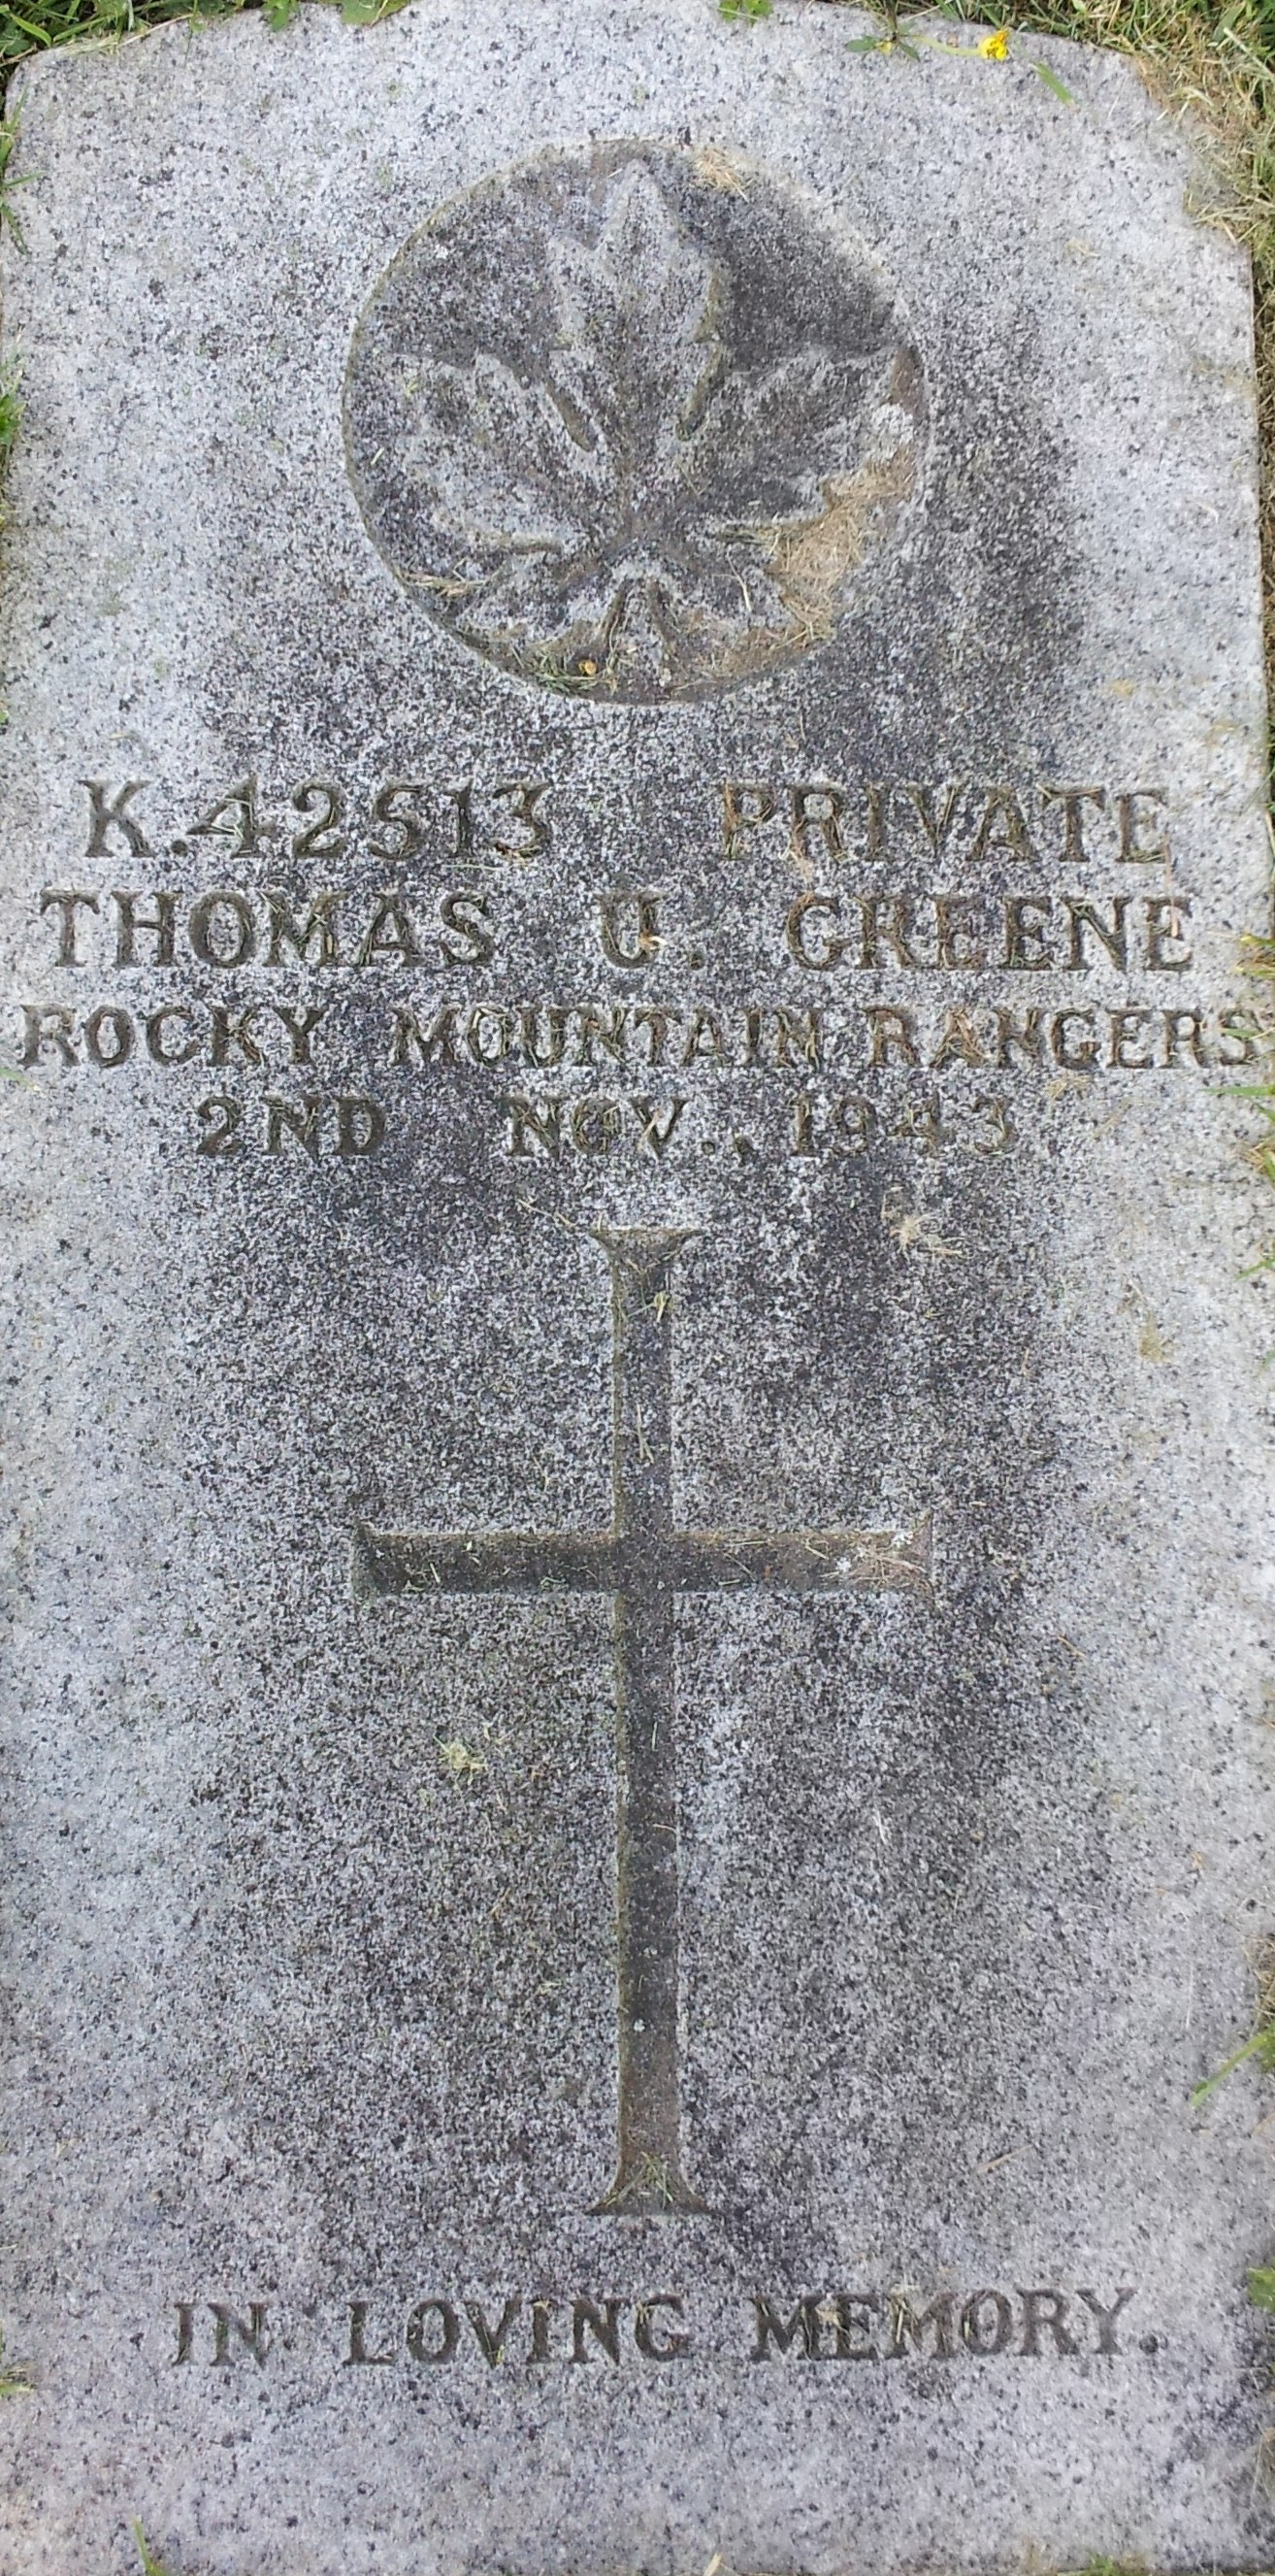 Grave Marker– Gravestone of Thomas U. Greene taken at Nanaimo Municipal Cemetery.